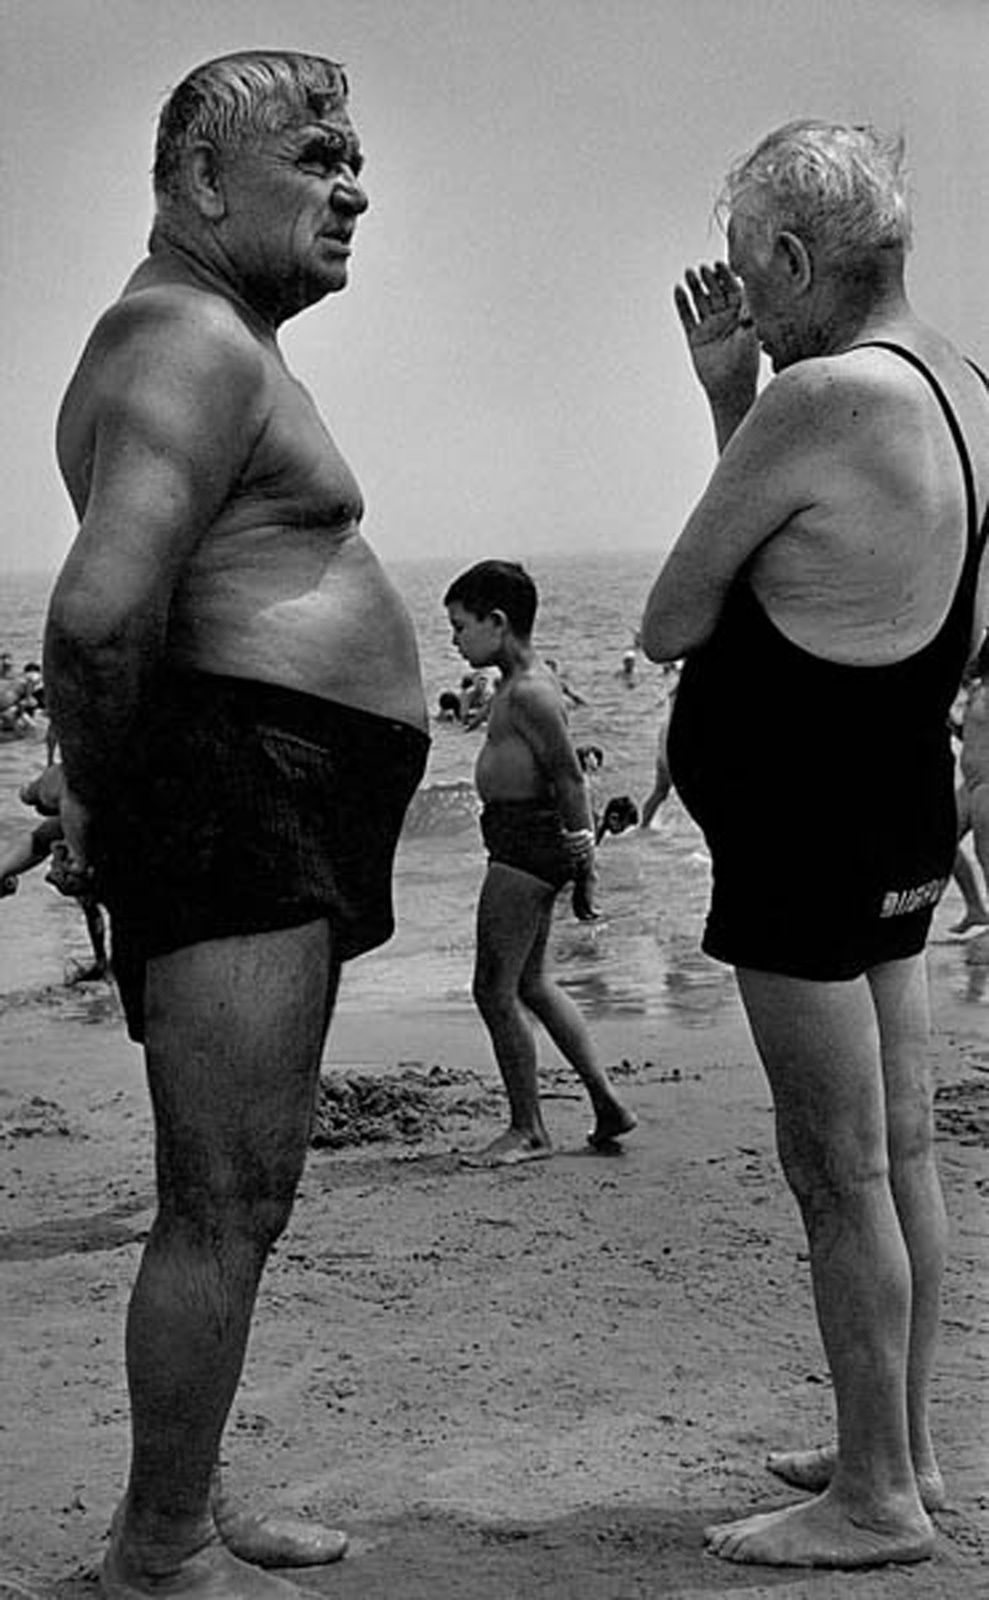 """""""Two Men and a Boy Contemplate"""", 1950 © Harold Feinstein - Courtesy Galerie Thierry Bigaignon"""